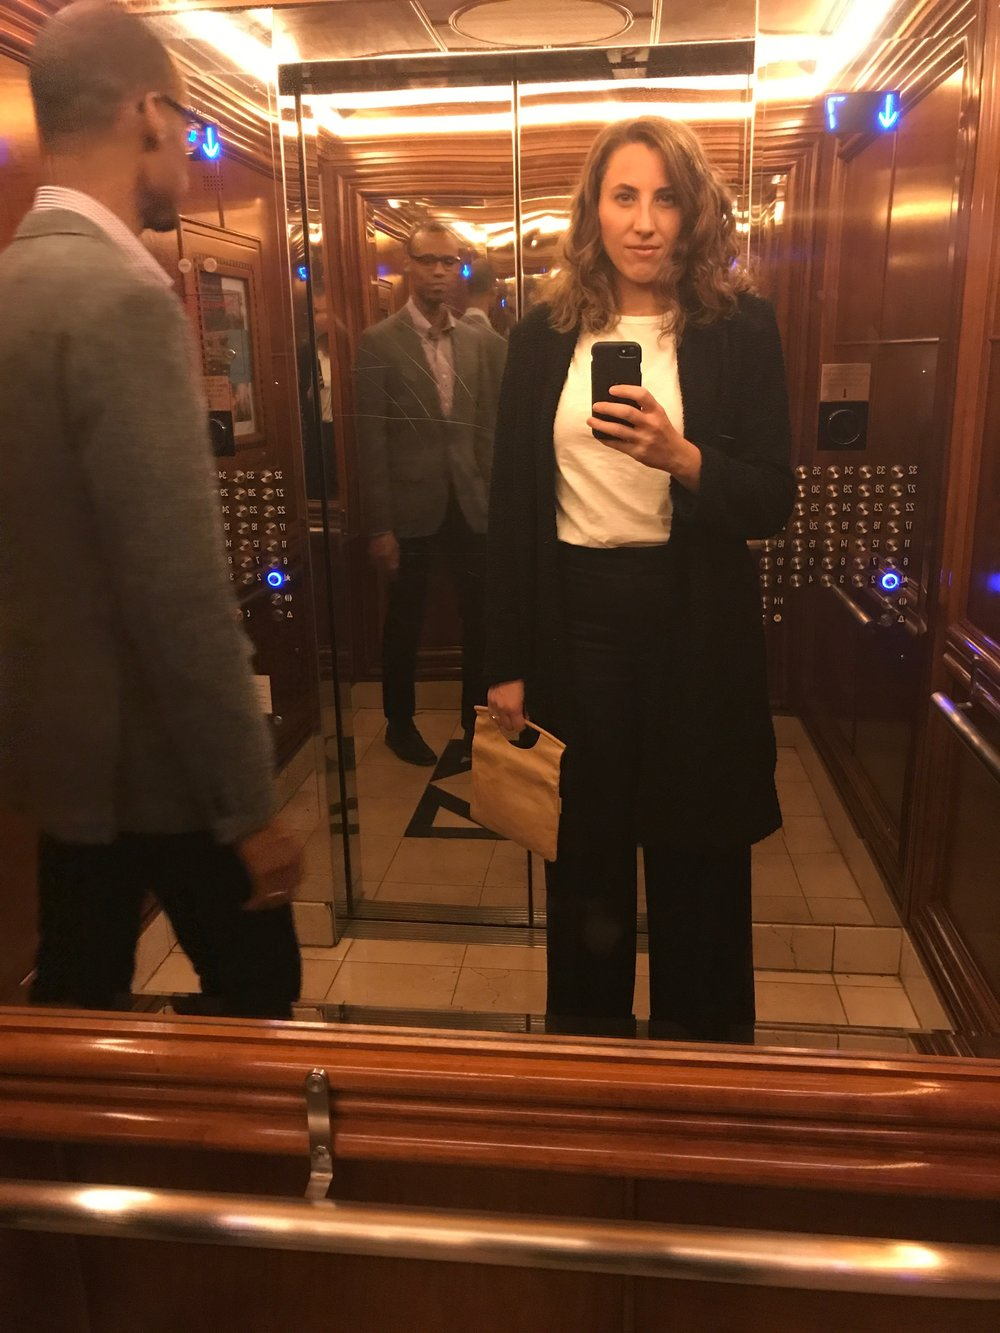 Emi & her husband Steve in a fancy NYC elevator en route to a documentary premiere no doubt...